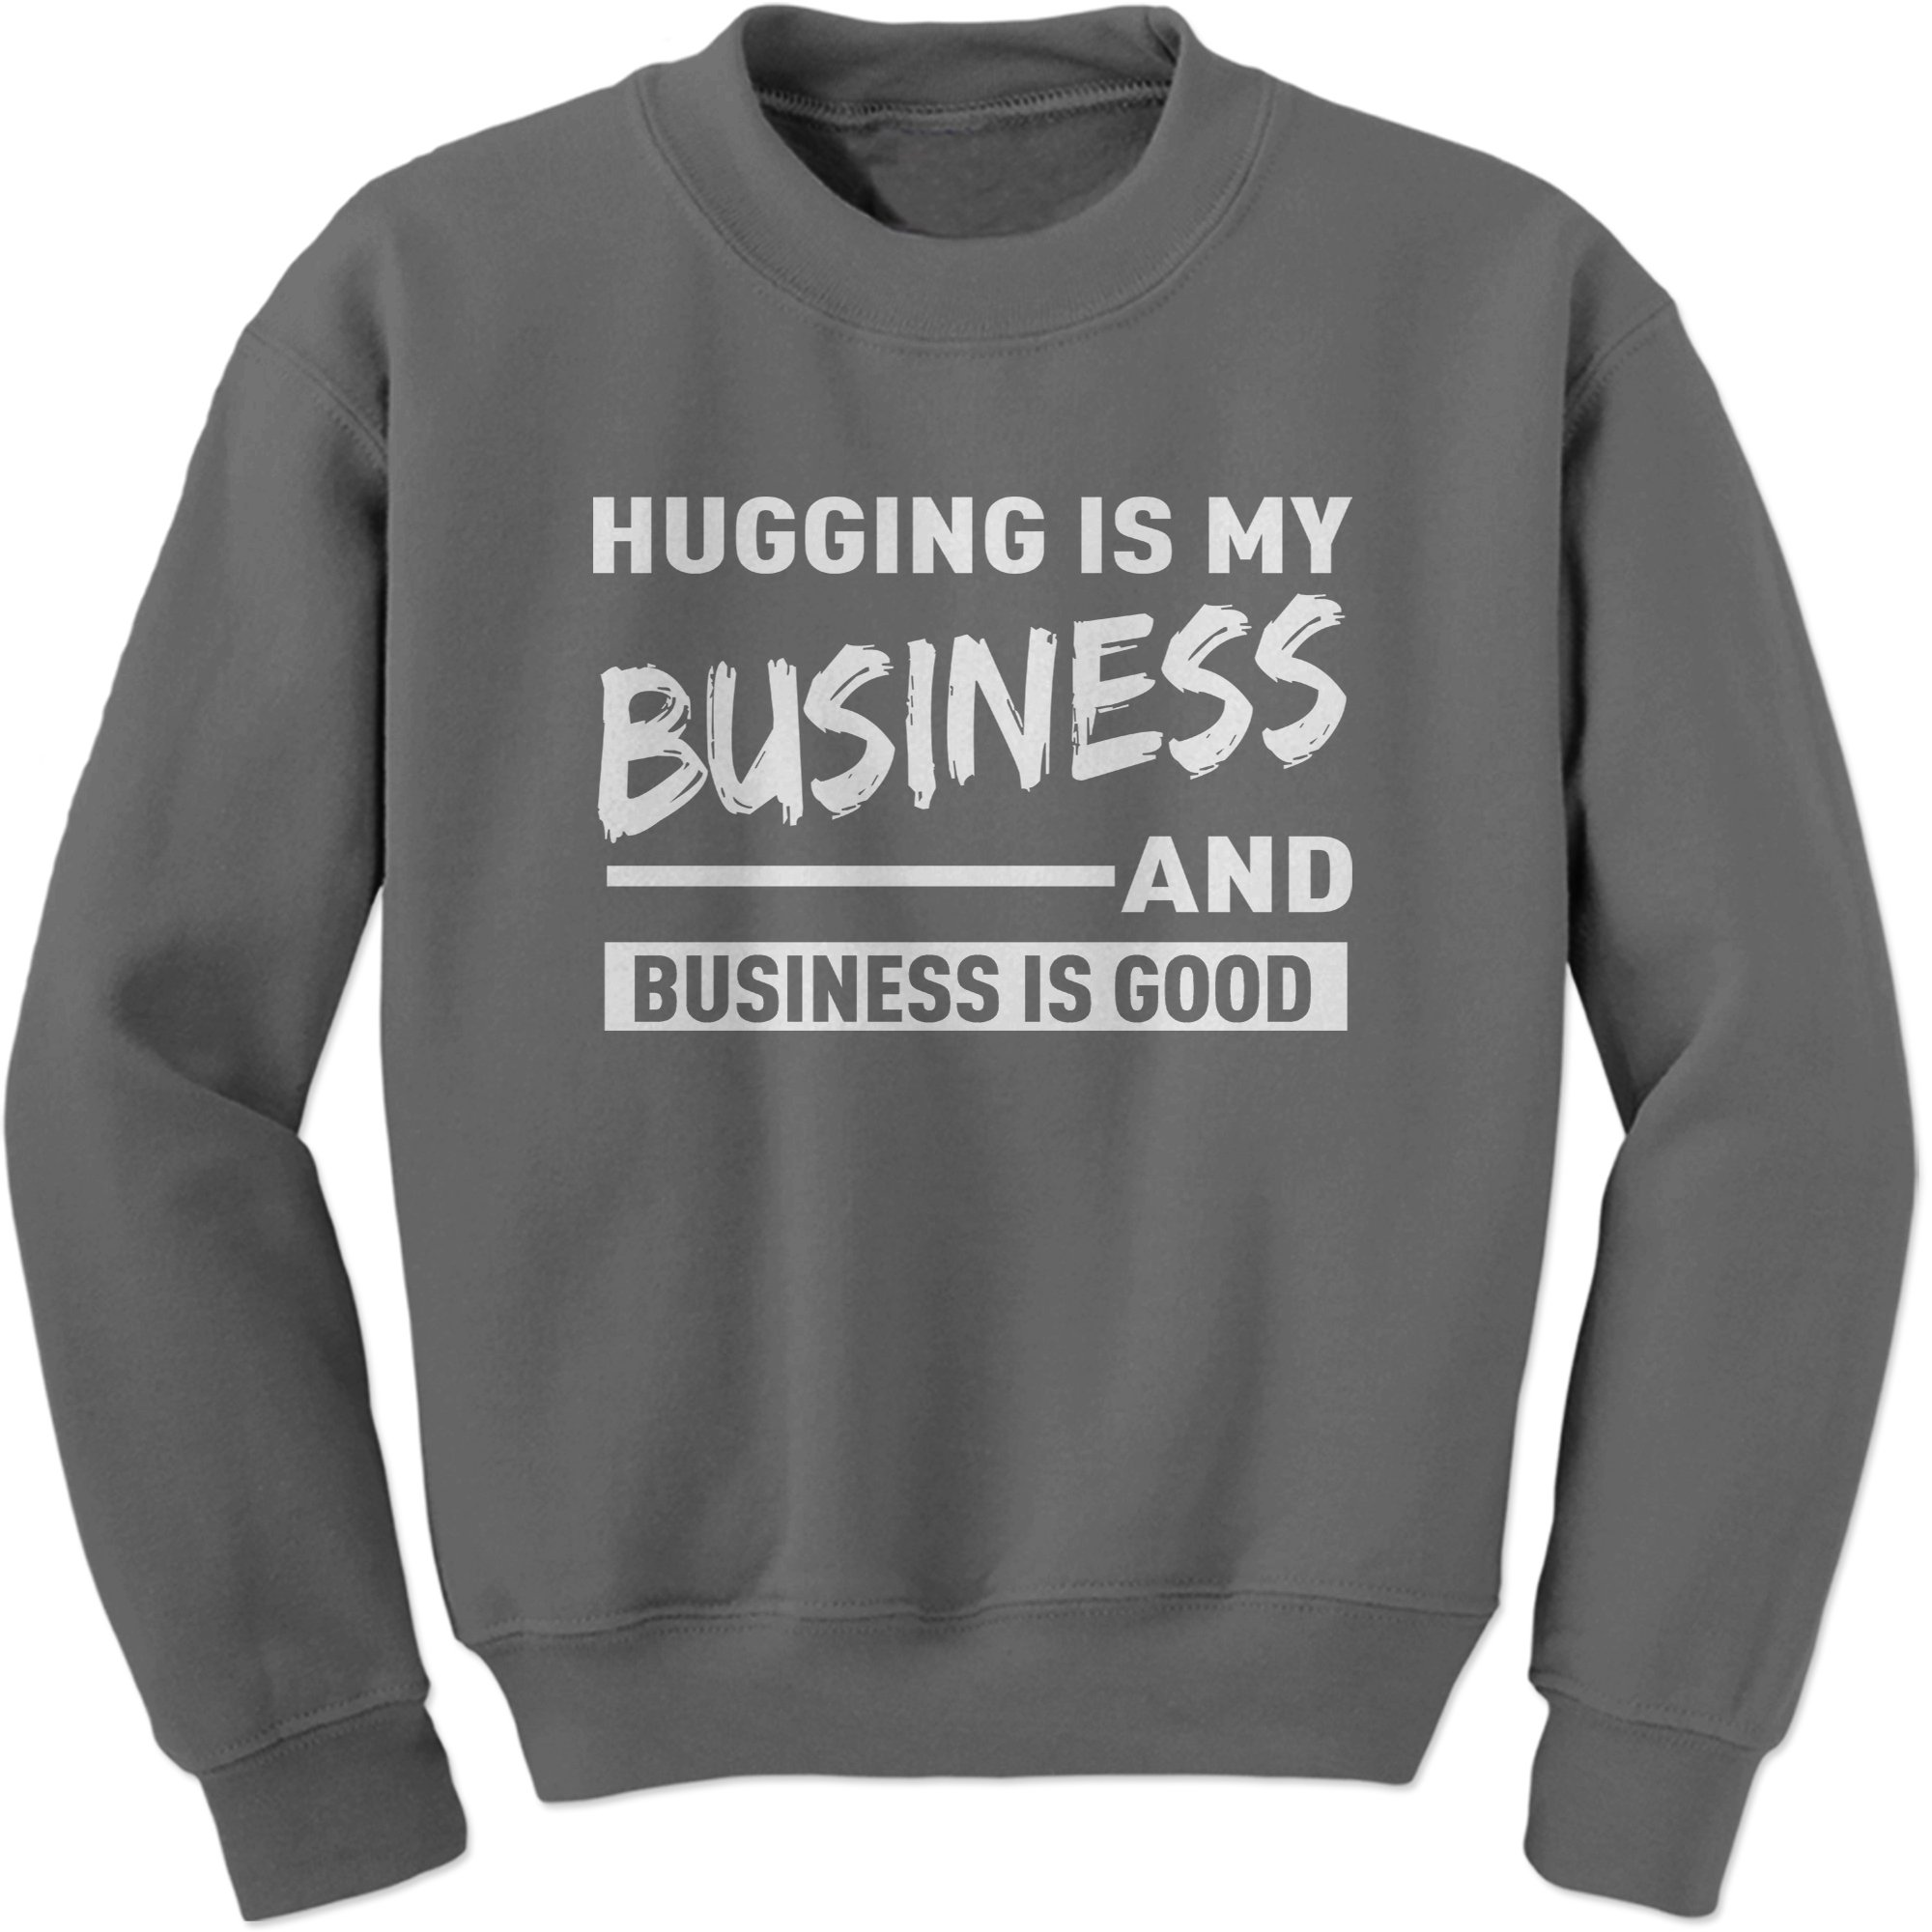 Expression Tees Crew Hugging Is My Business Adult Medium Charcoal Grey